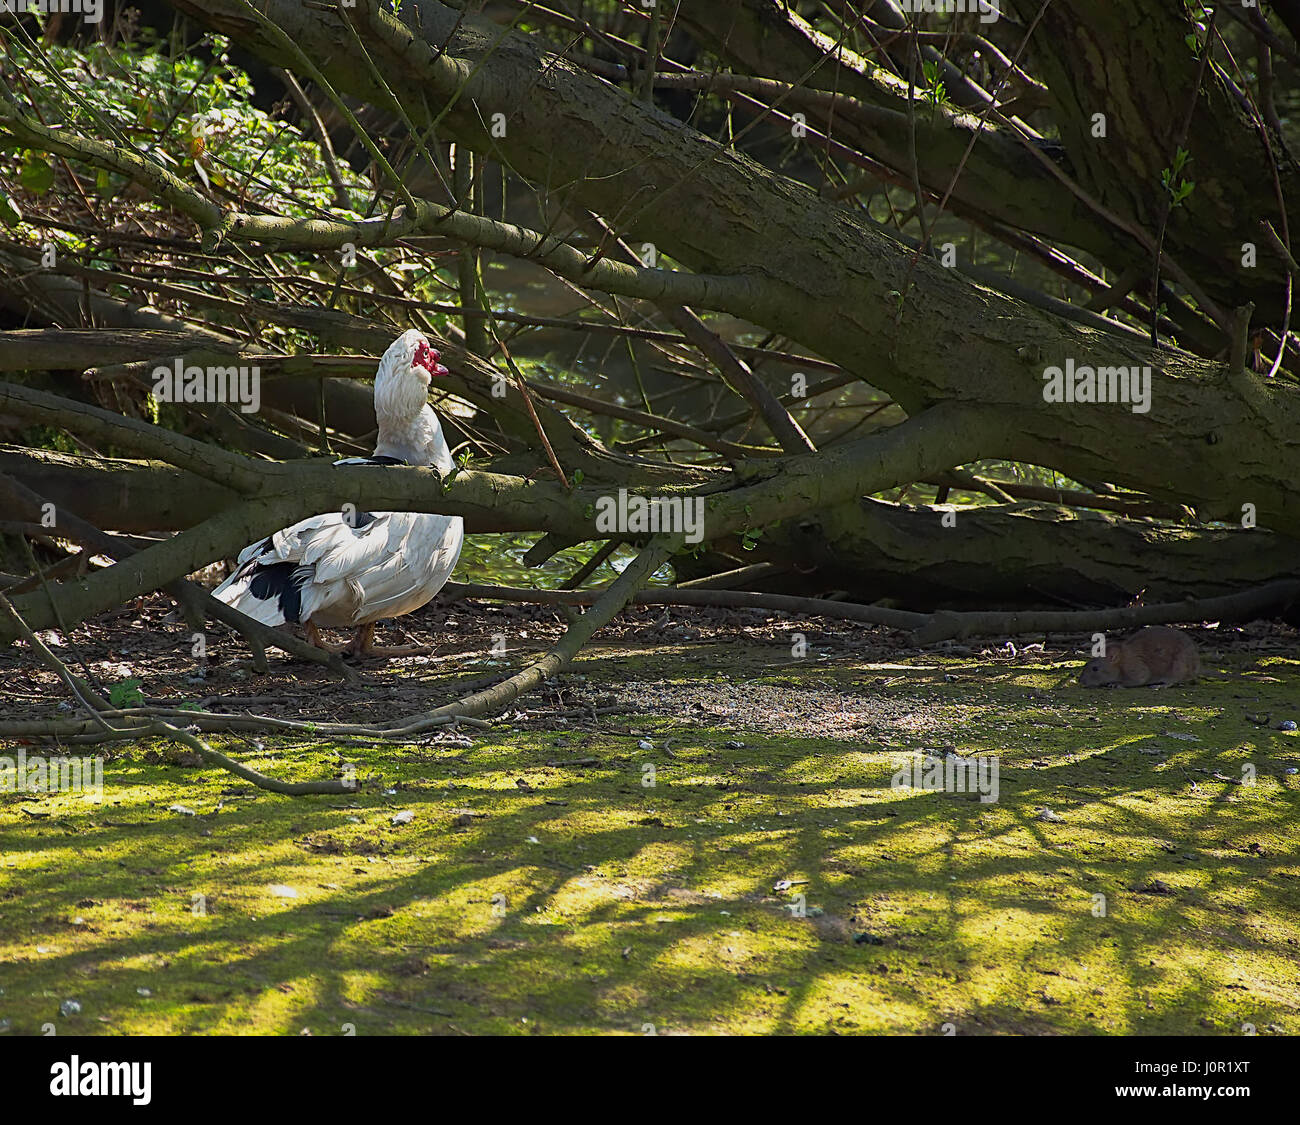 Muscovy duck and rat eating the same food in woods.Animal behaviour,pest infestation problem.Westport lake,Stoke - Stock Image